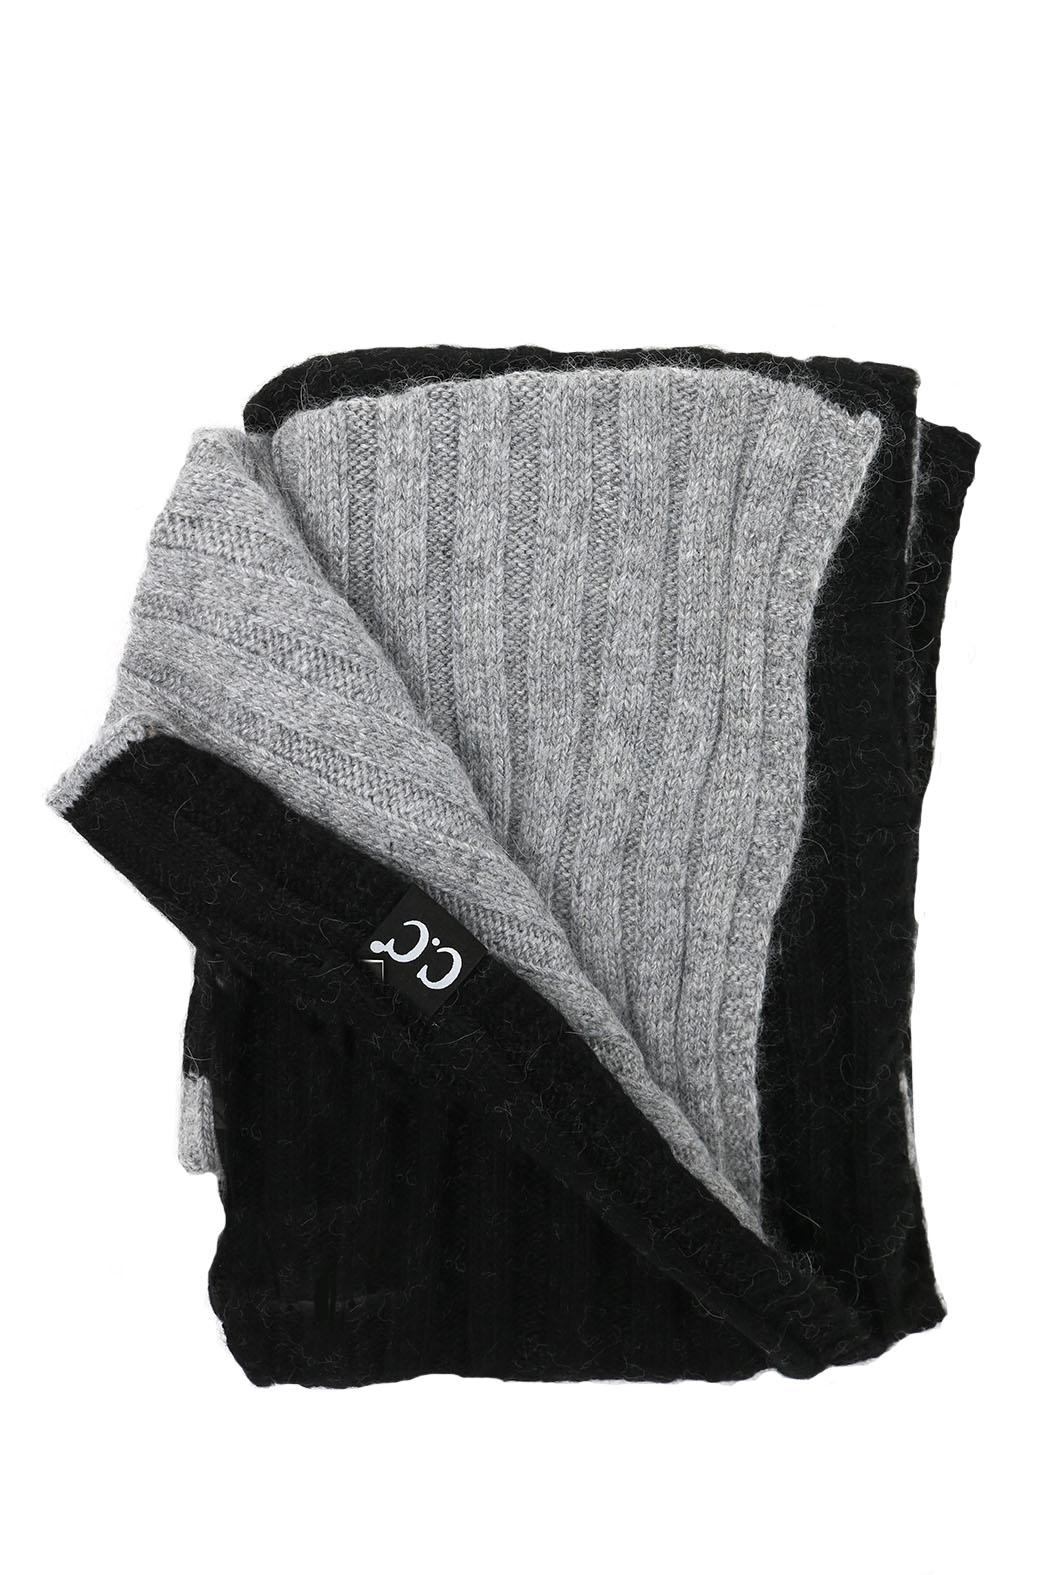 C.C Beanie Grey-Black Infinity Scarf - Front Cropped Image